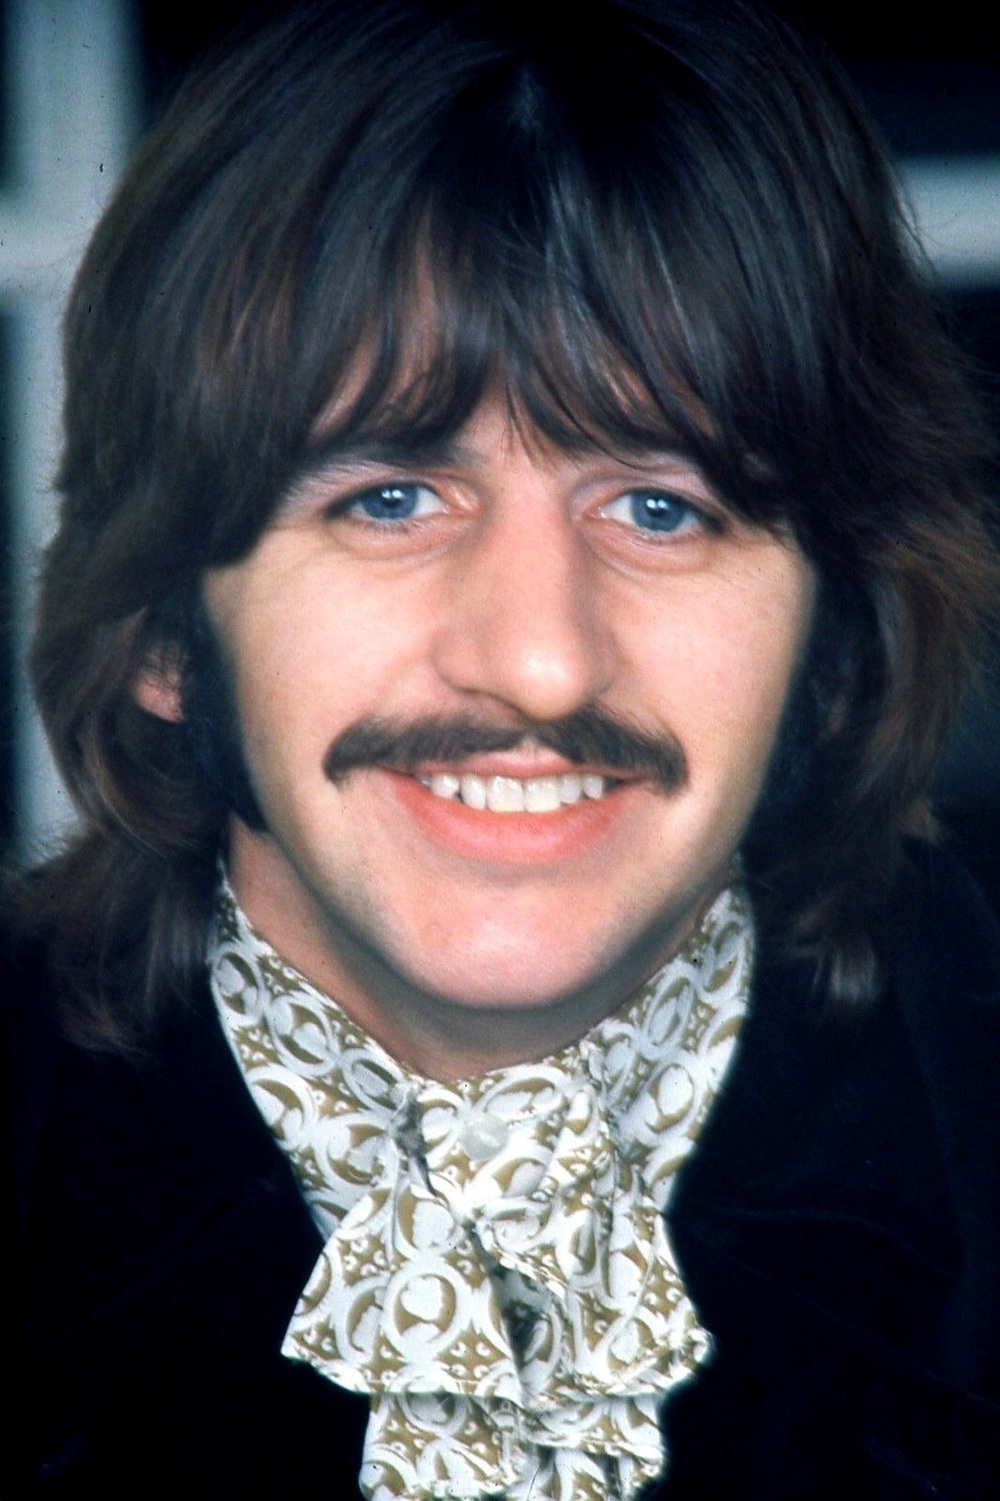 Ringo Starr photographed for the White Album, 1968.